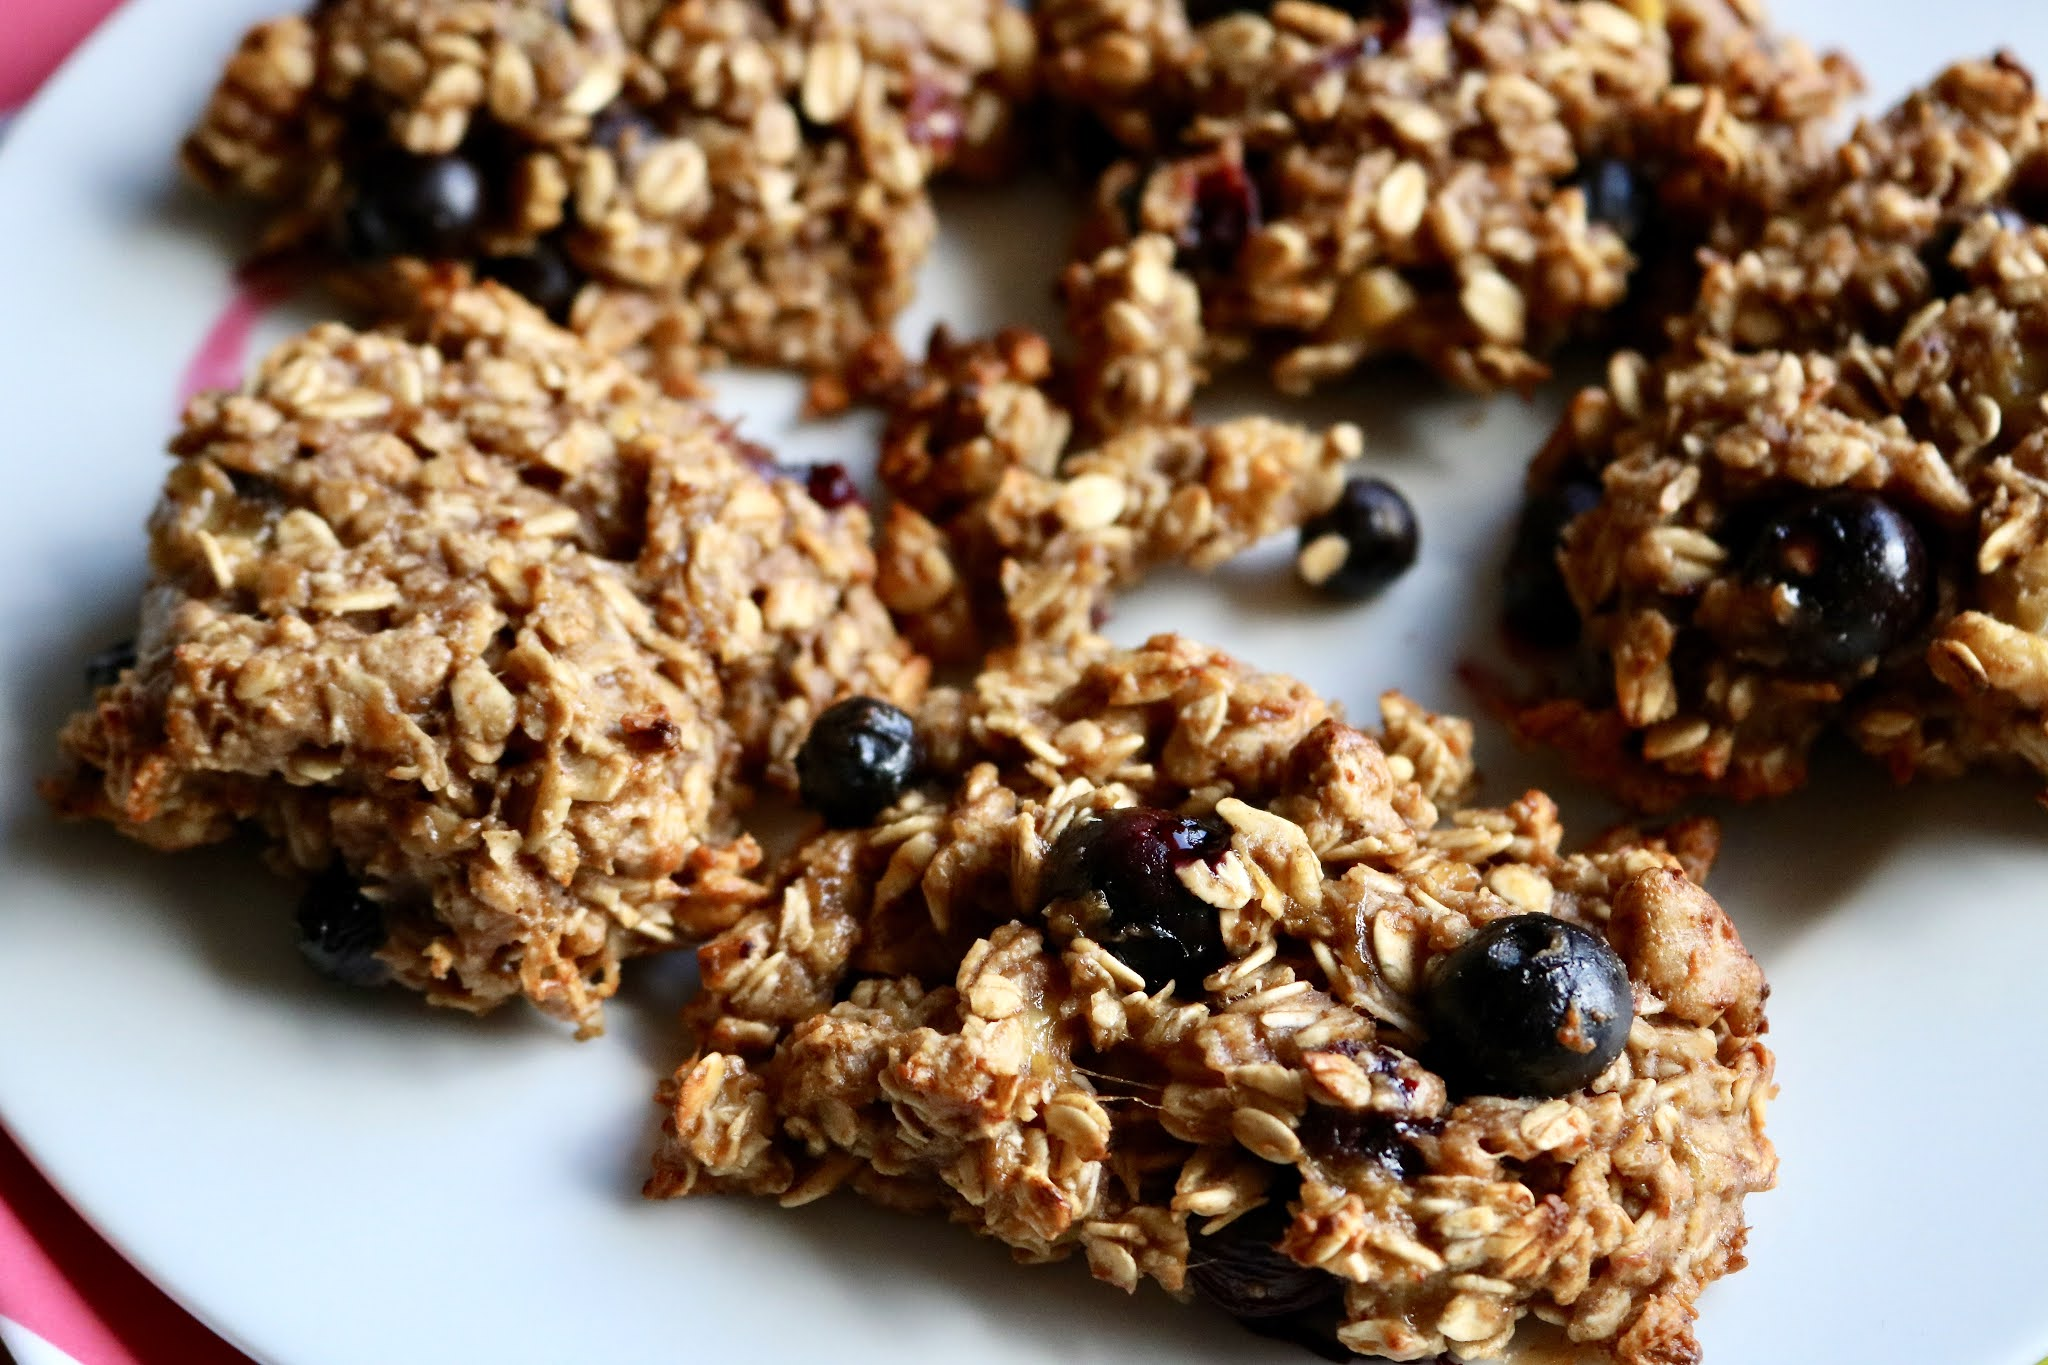 Blueberry Energy Cookies